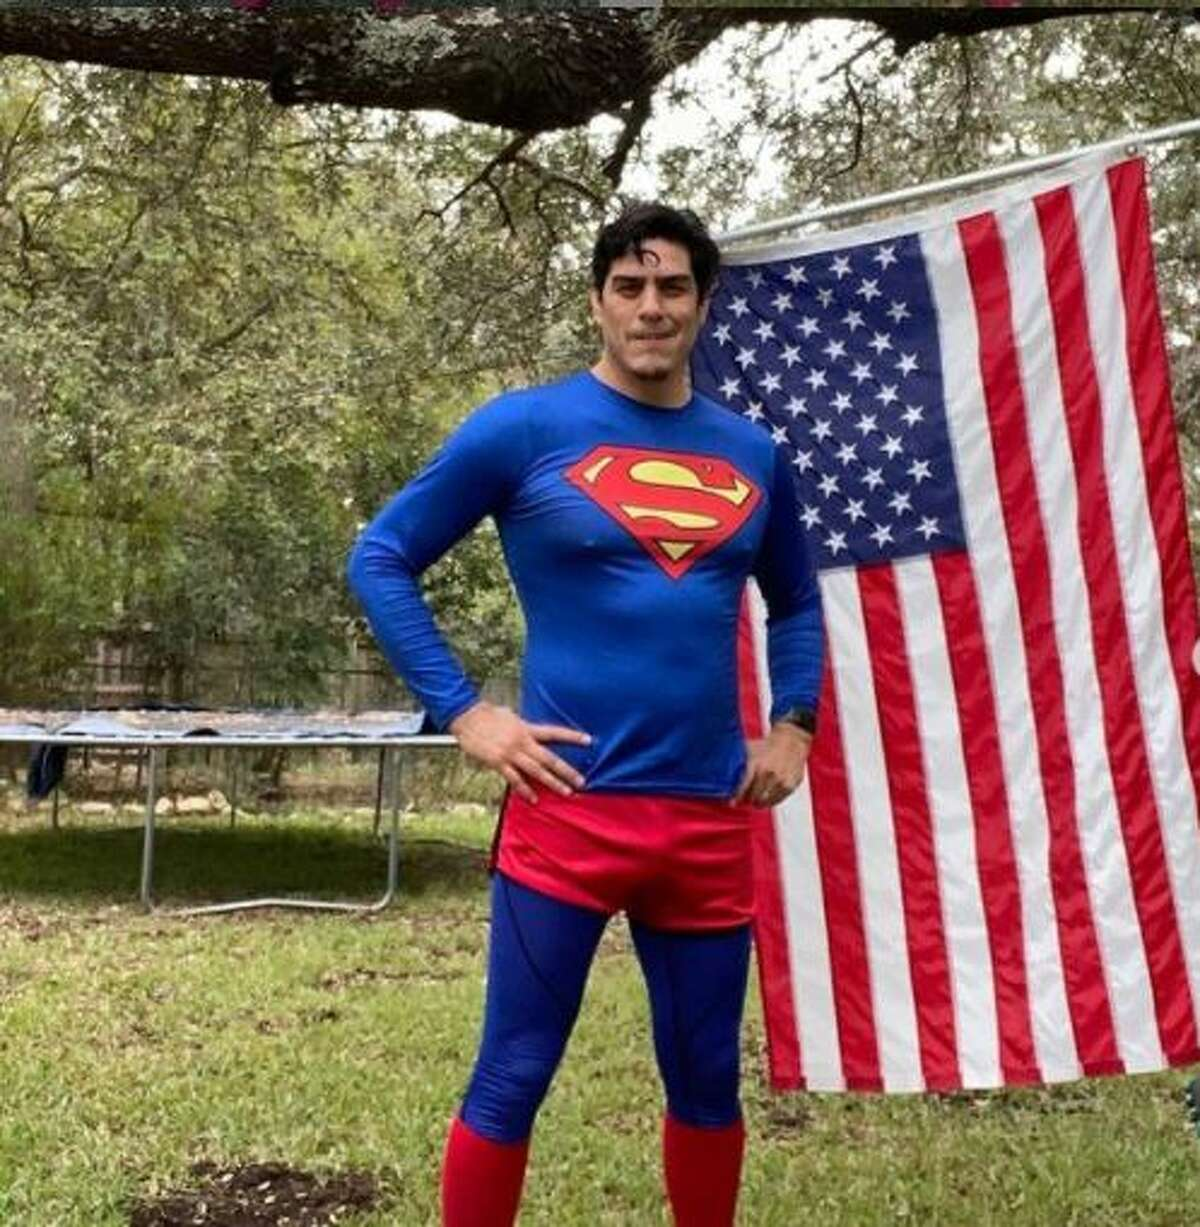 David Alcantar, 42, plans on performing his final Superman run at 11 a.m. starting at Artpace (445 N. Main Ave.) on President-elect Joe Biden's Inauguration Day.